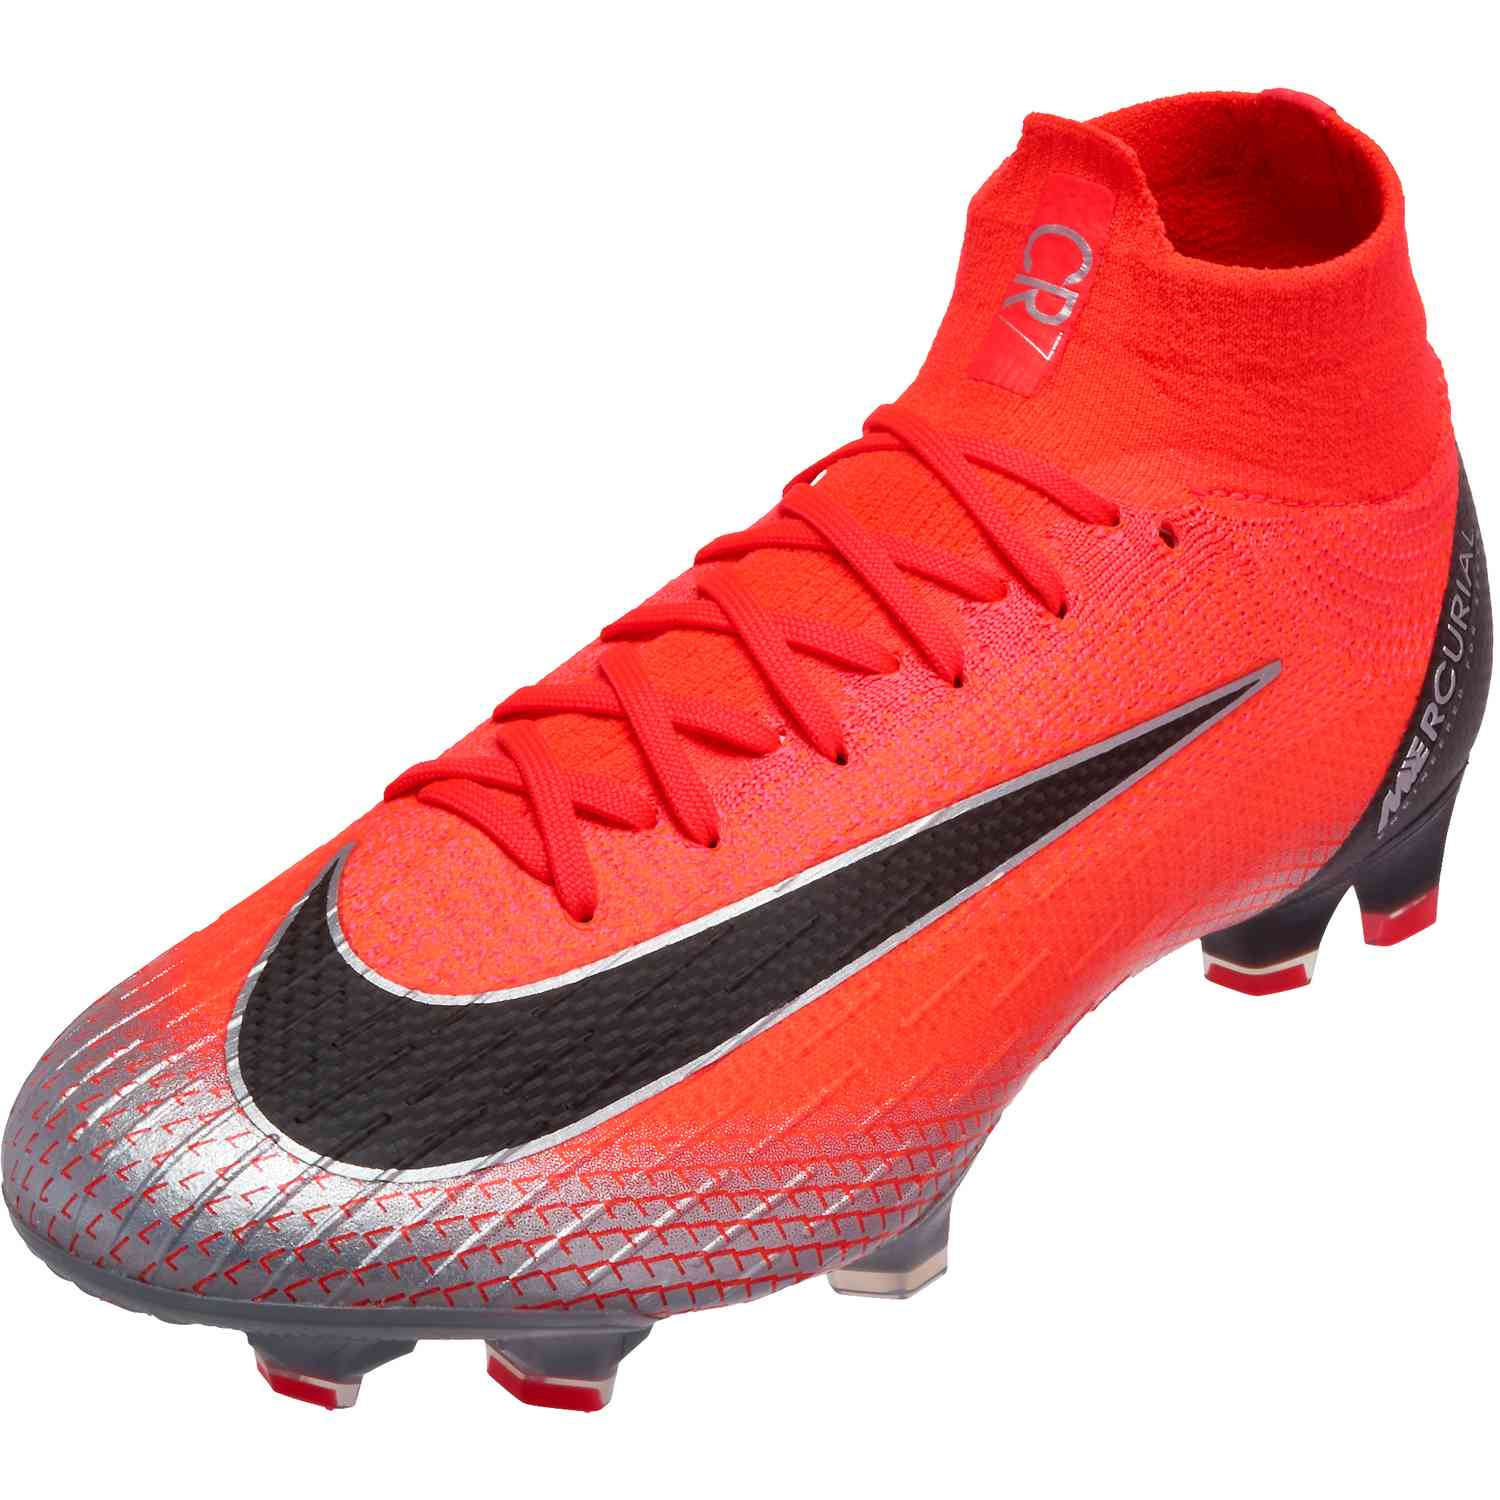 f8667be3e67e Nike CR7 Mercurial Superfly Elite - Chapter 7 - SoccerPro.com